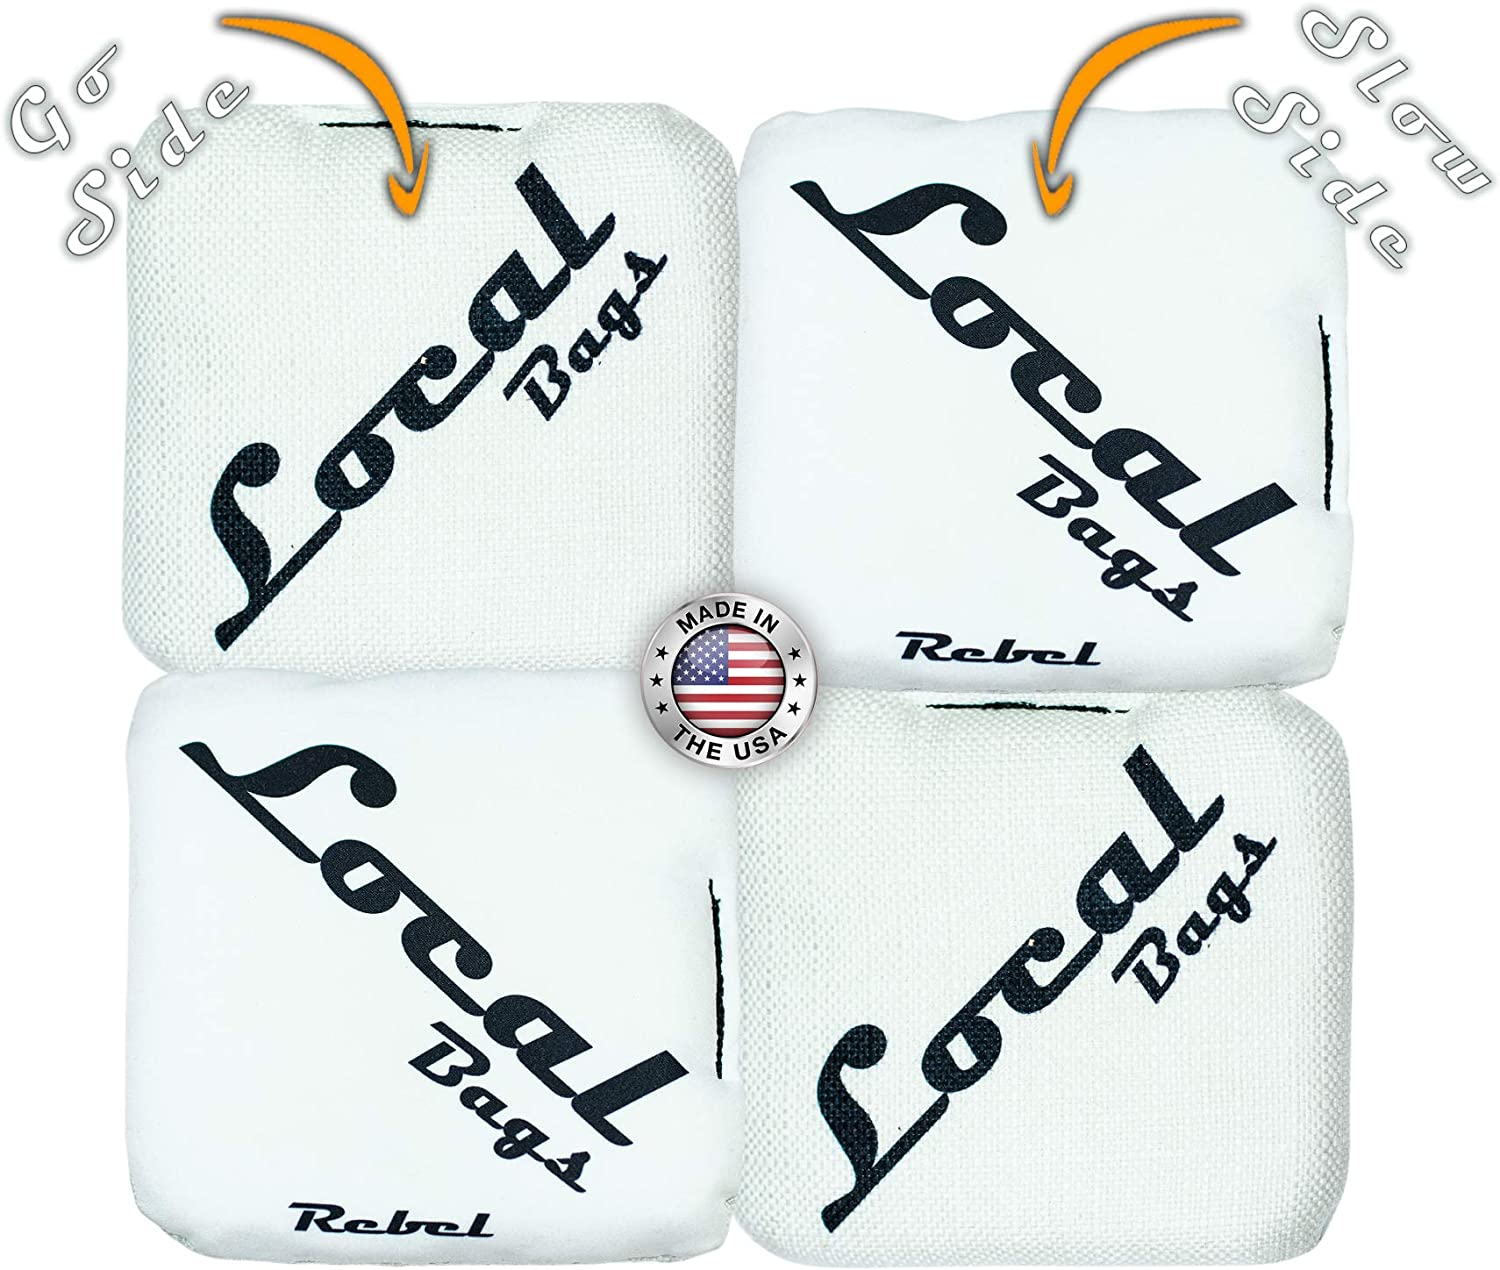 Local Bags Cornhole Rebel Series Medium Stick Side//Slick Side Made in USA Set of 4 Bags- ACL Approved Resin Filled Double Sided